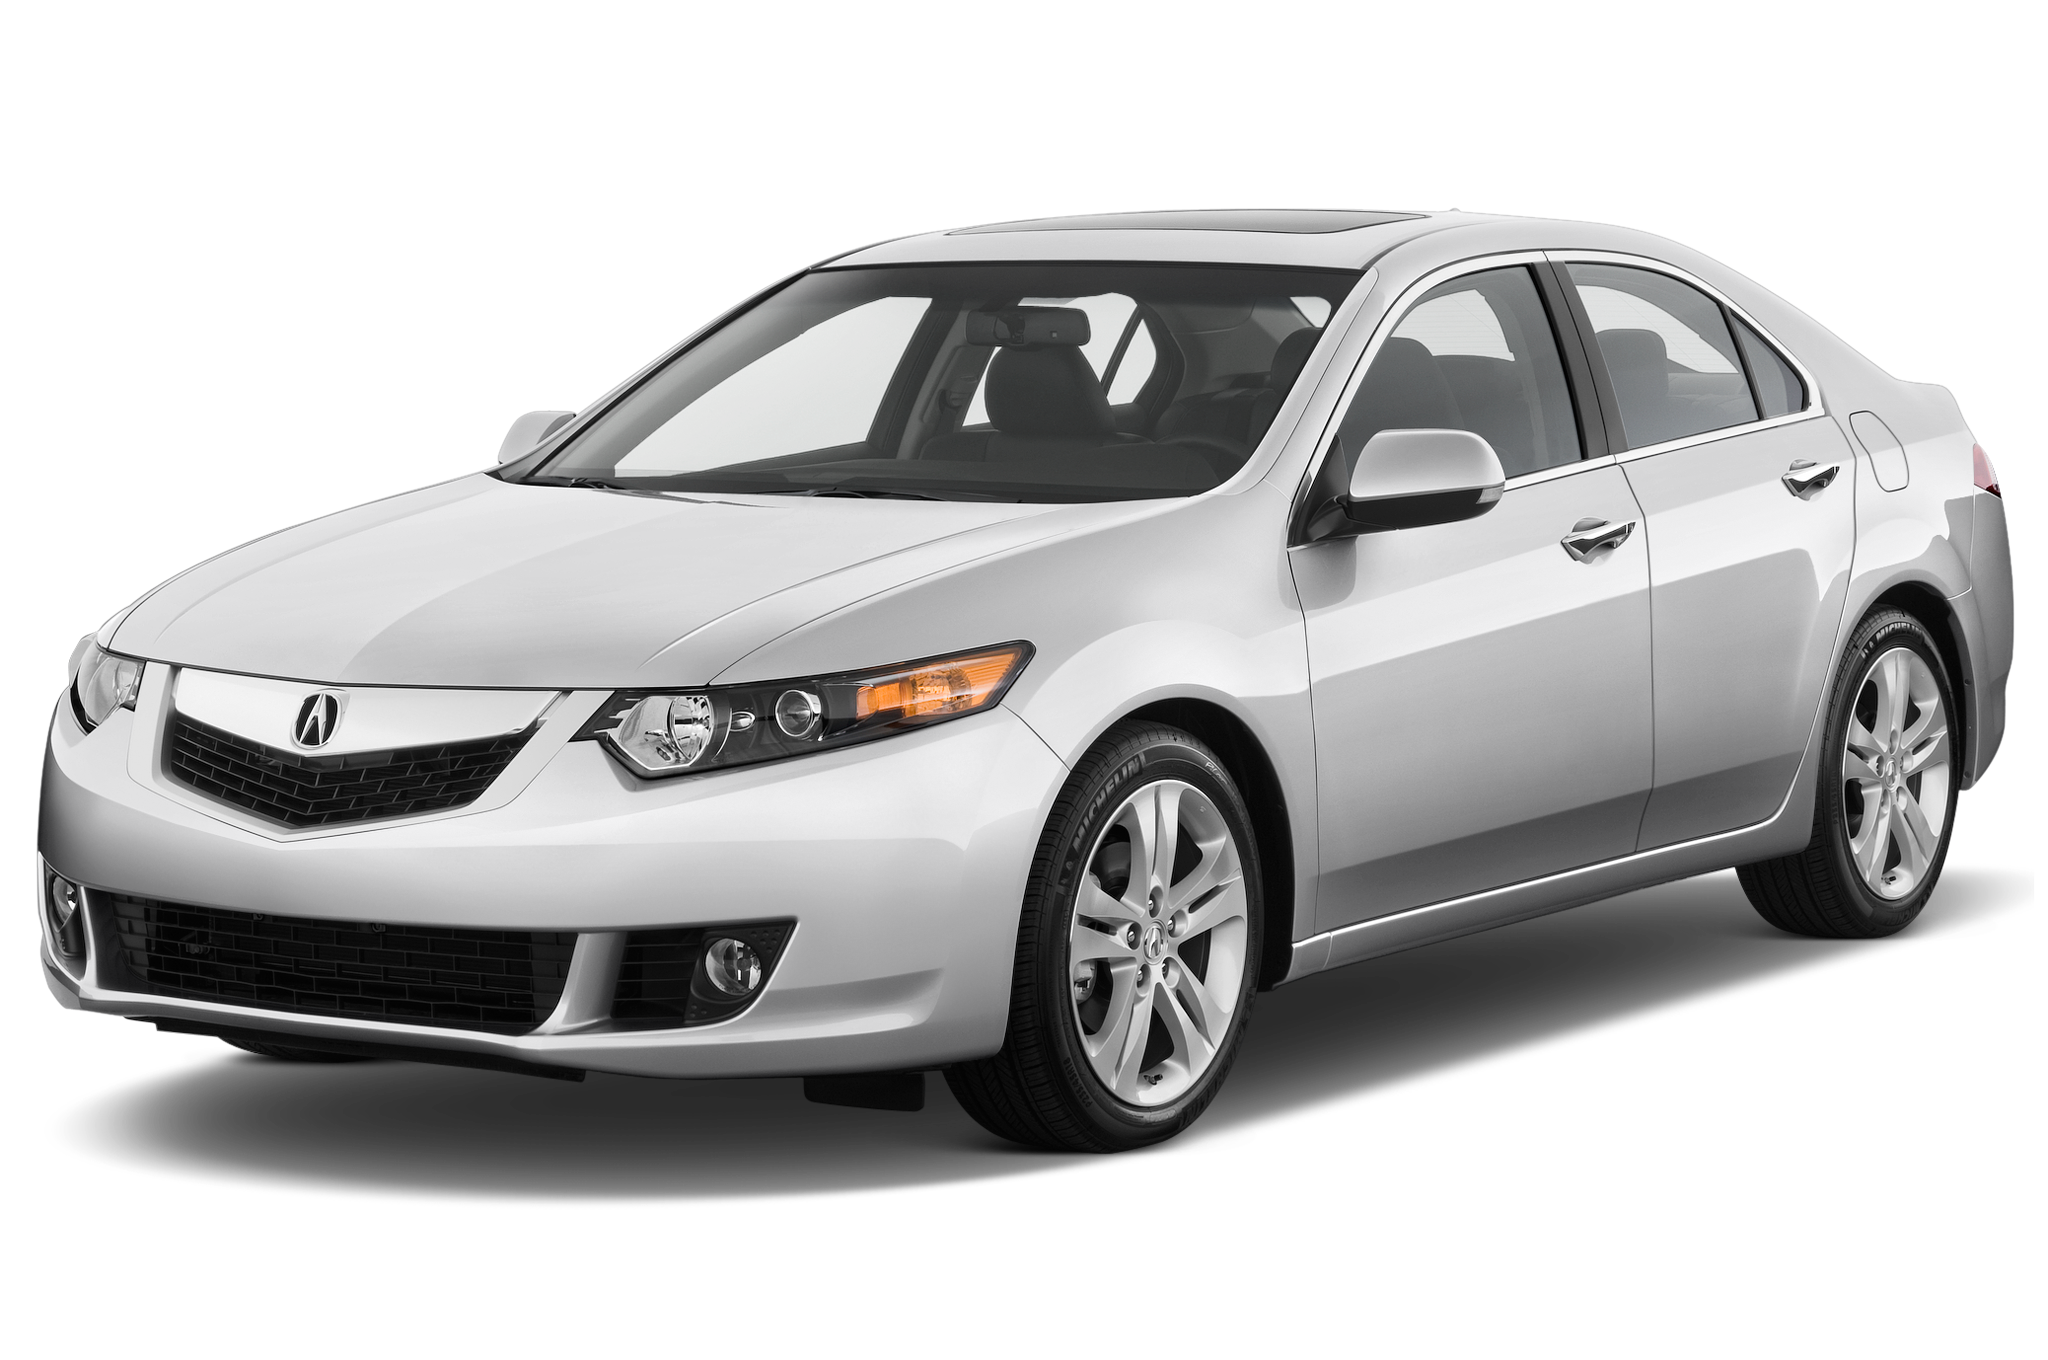 2010 acura tsx v 6 acura luxury sedan review. Black Bedroom Furniture Sets. Home Design Ideas